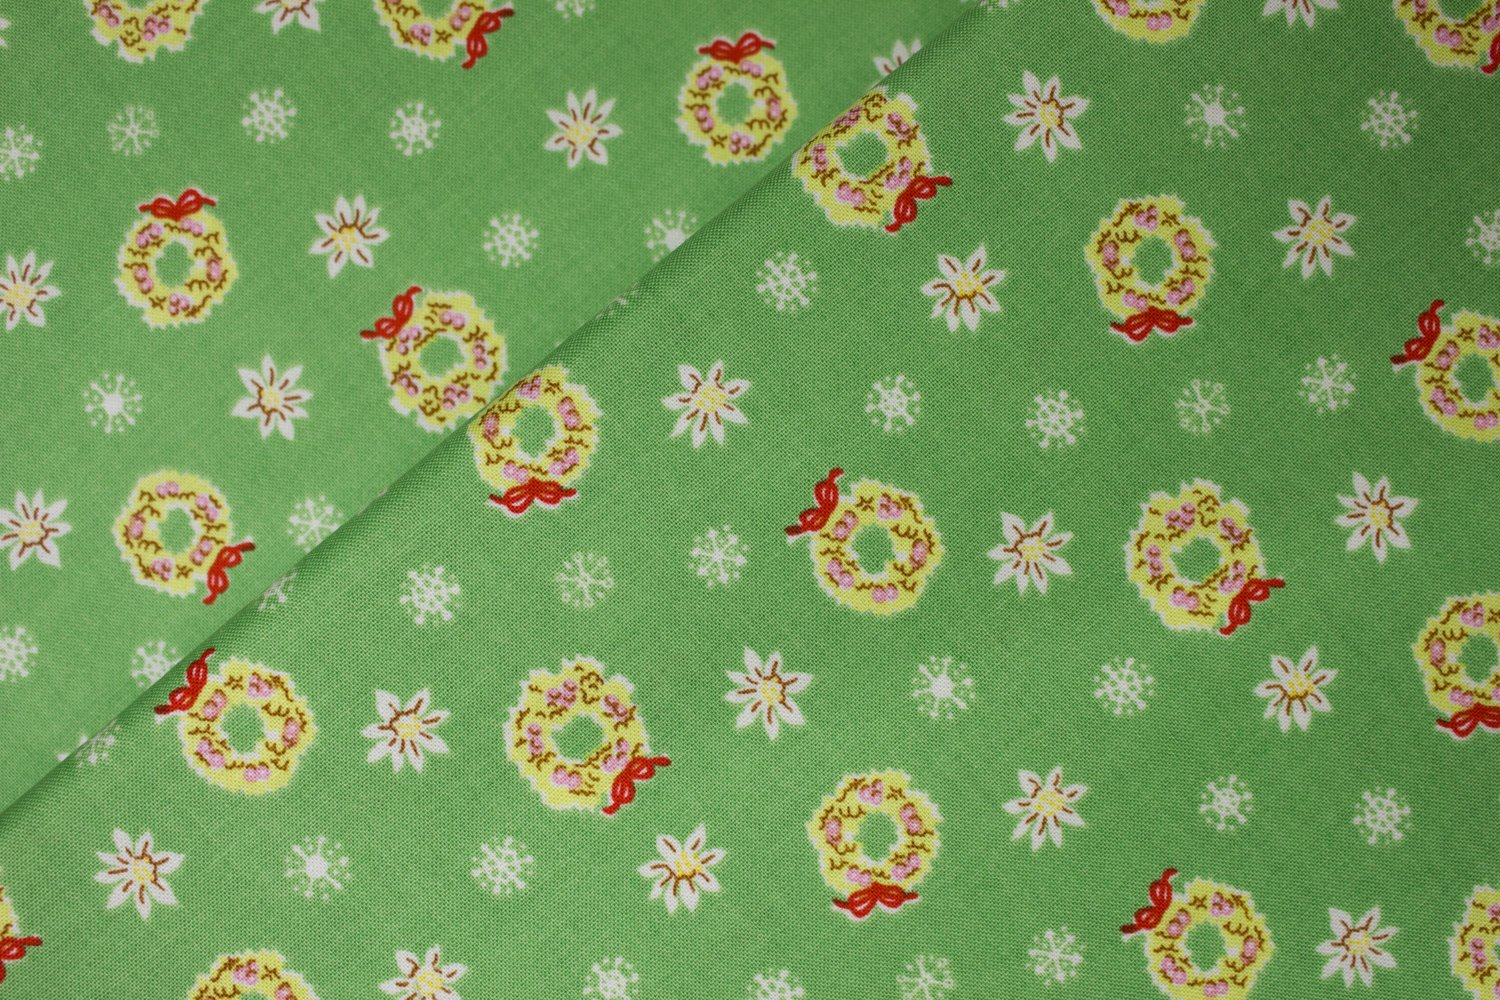 Wreaths on Green:  Little Joys by Elea Lutz for Penny Rose Fabrics